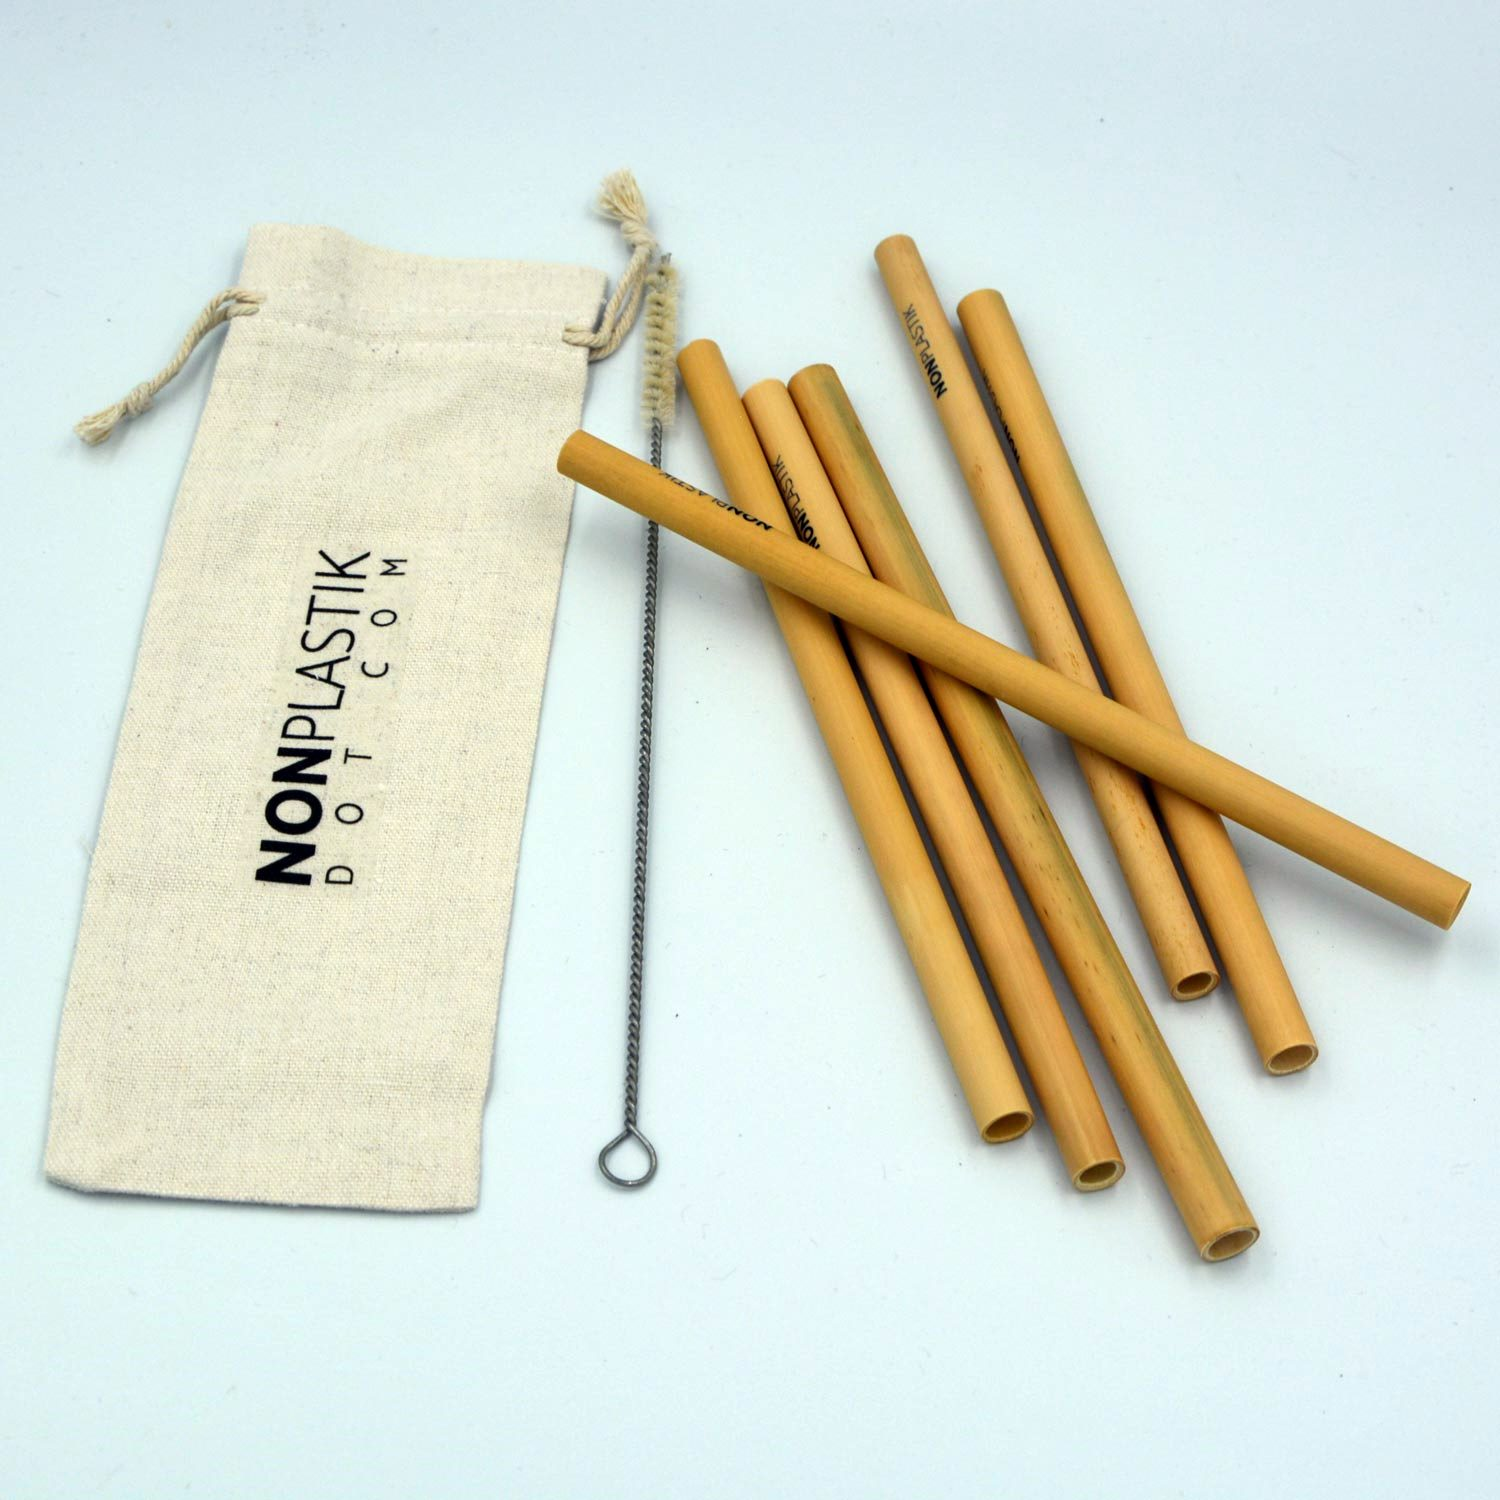 Bamboo straws with cleaning brush and environmentally friendly packaging